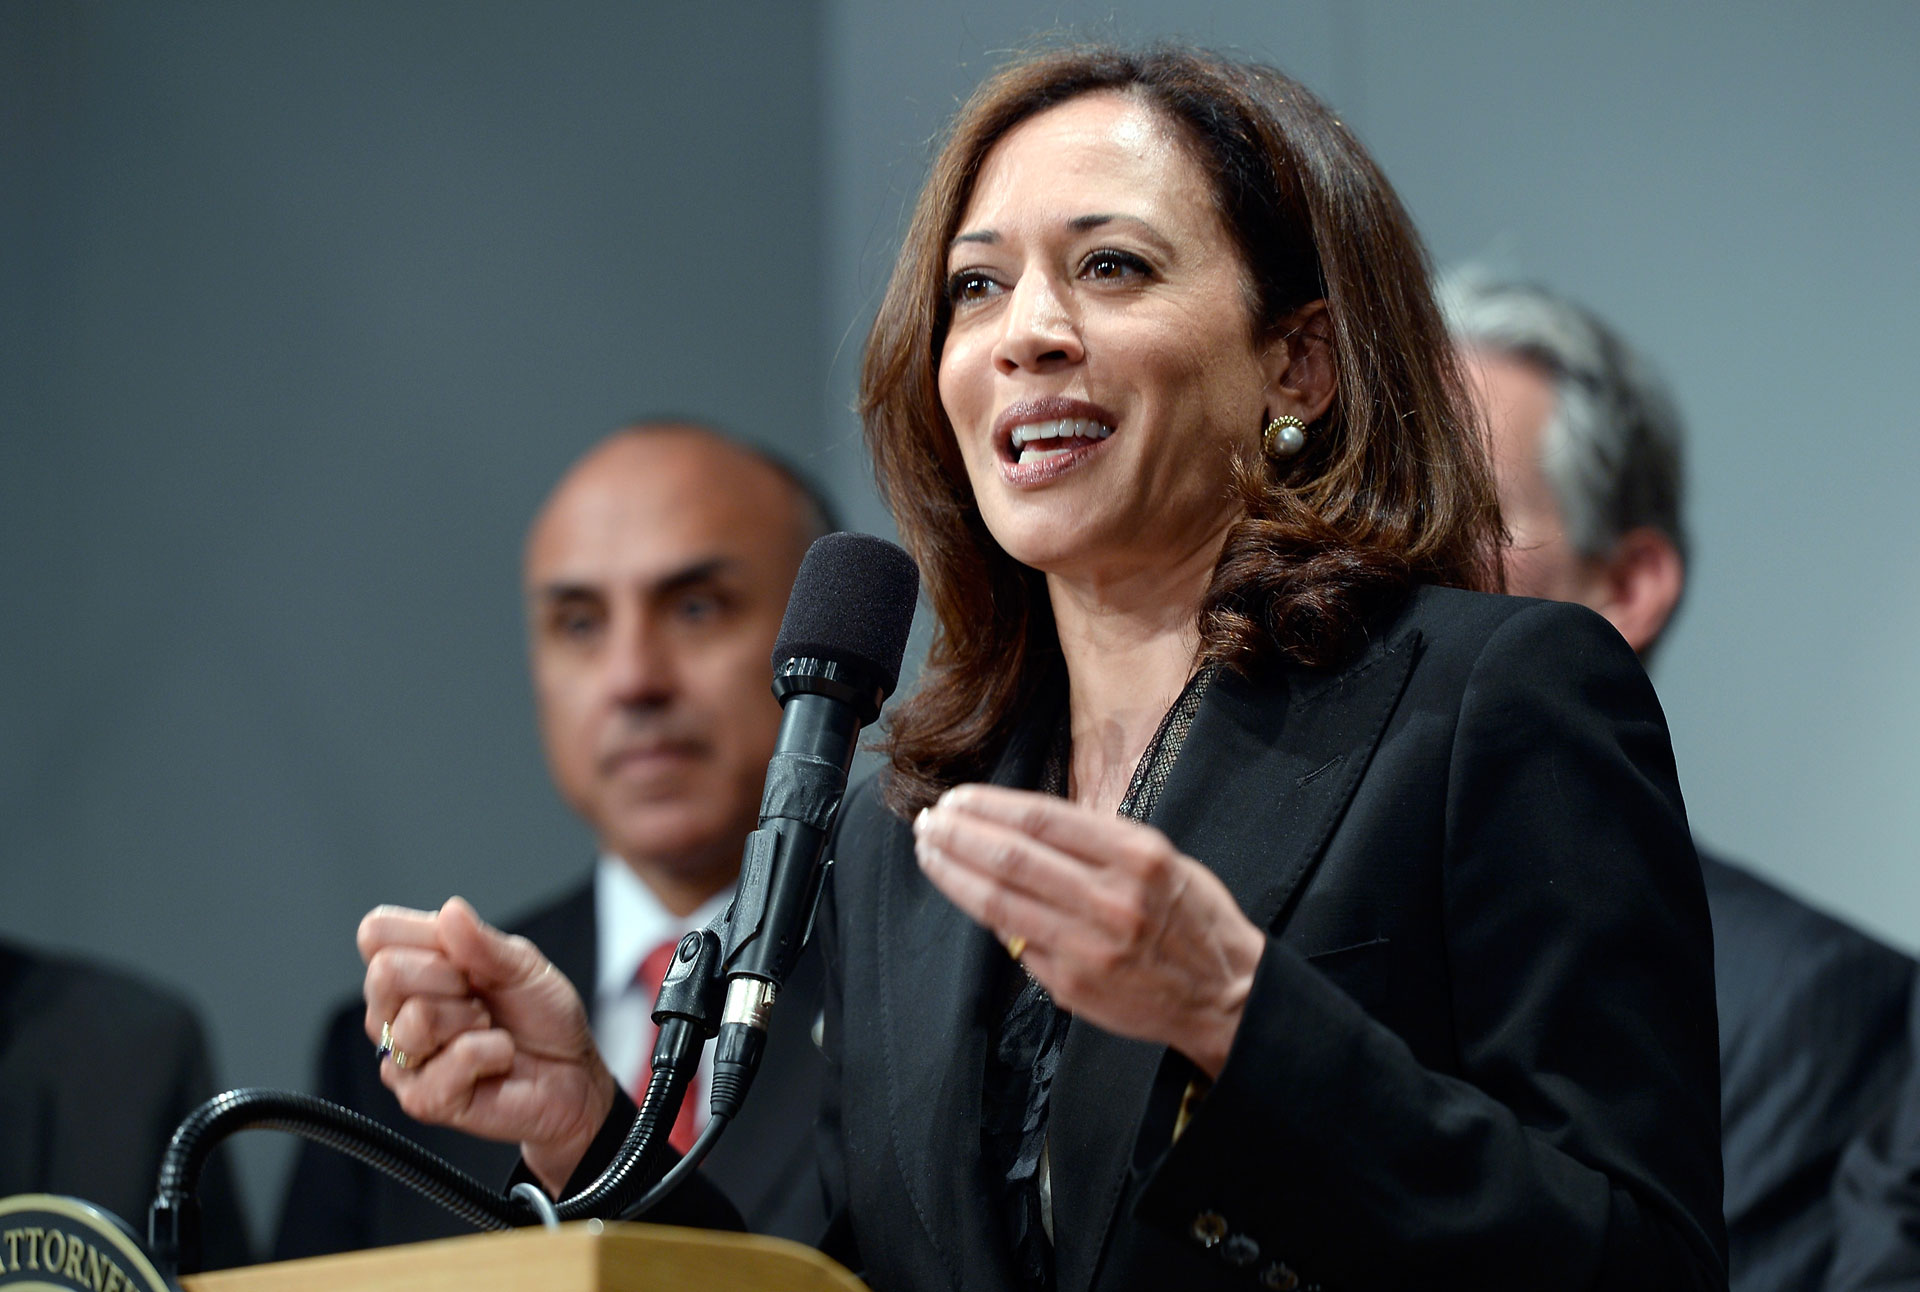 More than half of respondents to a new poll say they would vote for Calif. Attorney General Kamala Harris in the state's U.S. Senate race.